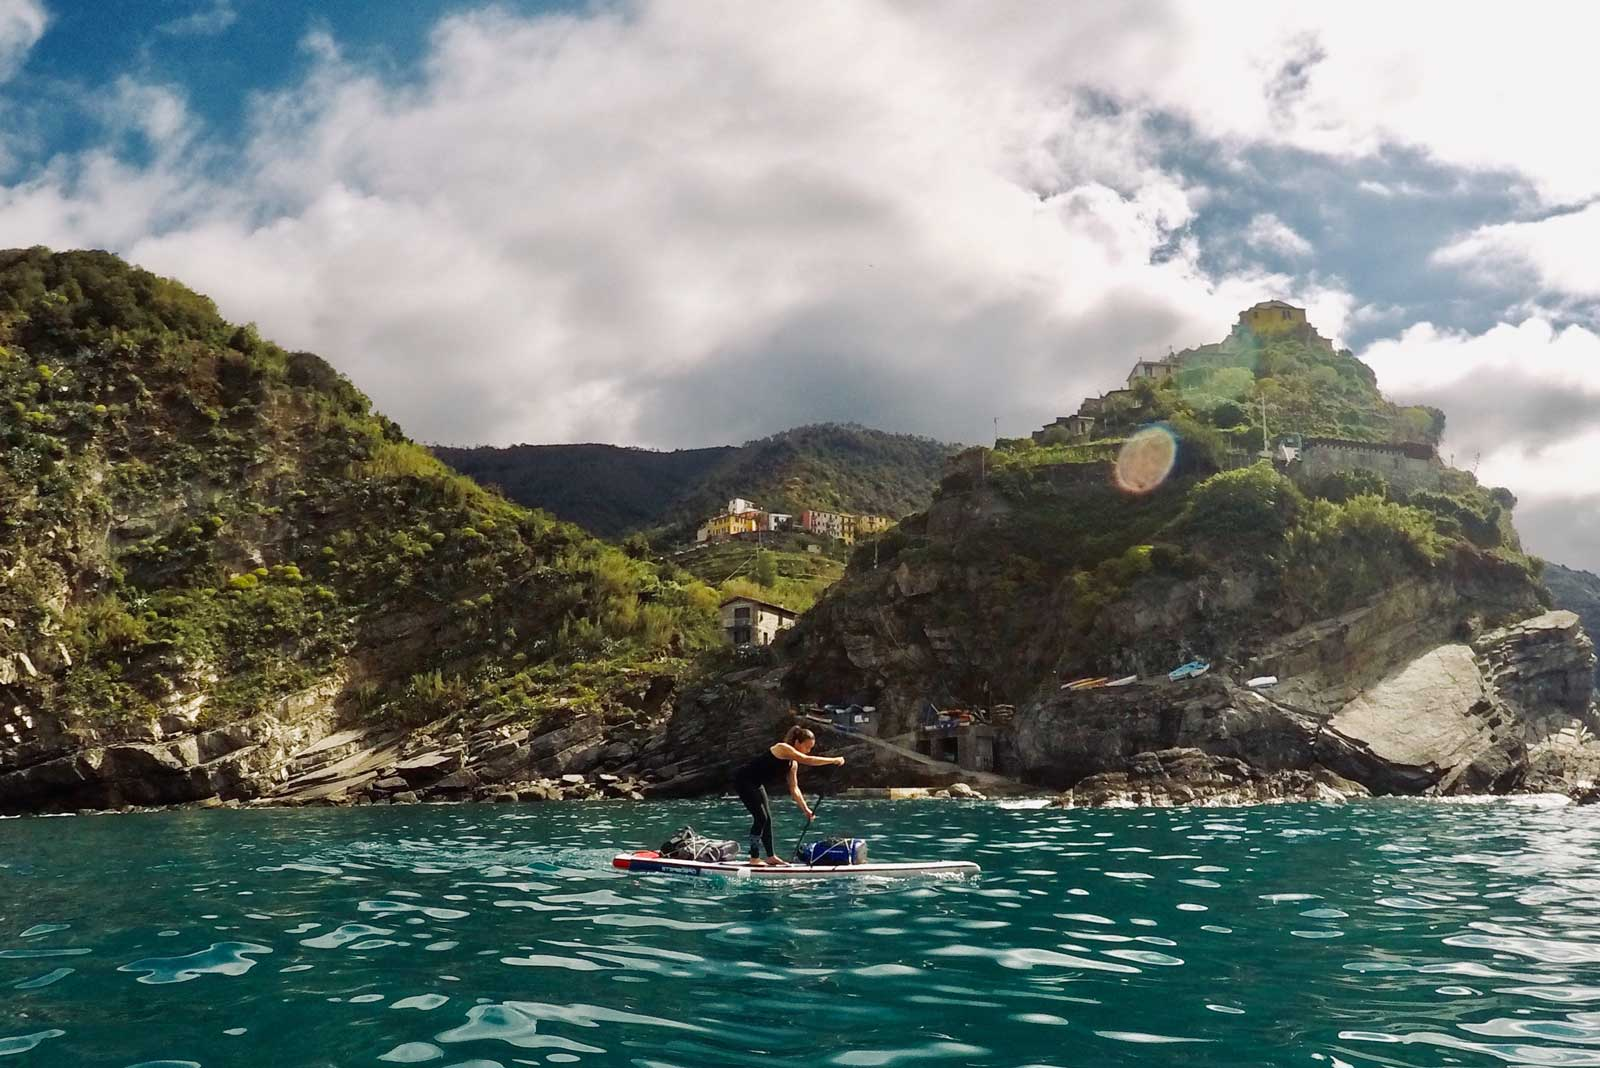 The-Three-Day-Effect-in-Italy-with-Linzi-Hawkin-Cinque-Terre-Stand-Up-Paddleboarding-adventure-blue-water